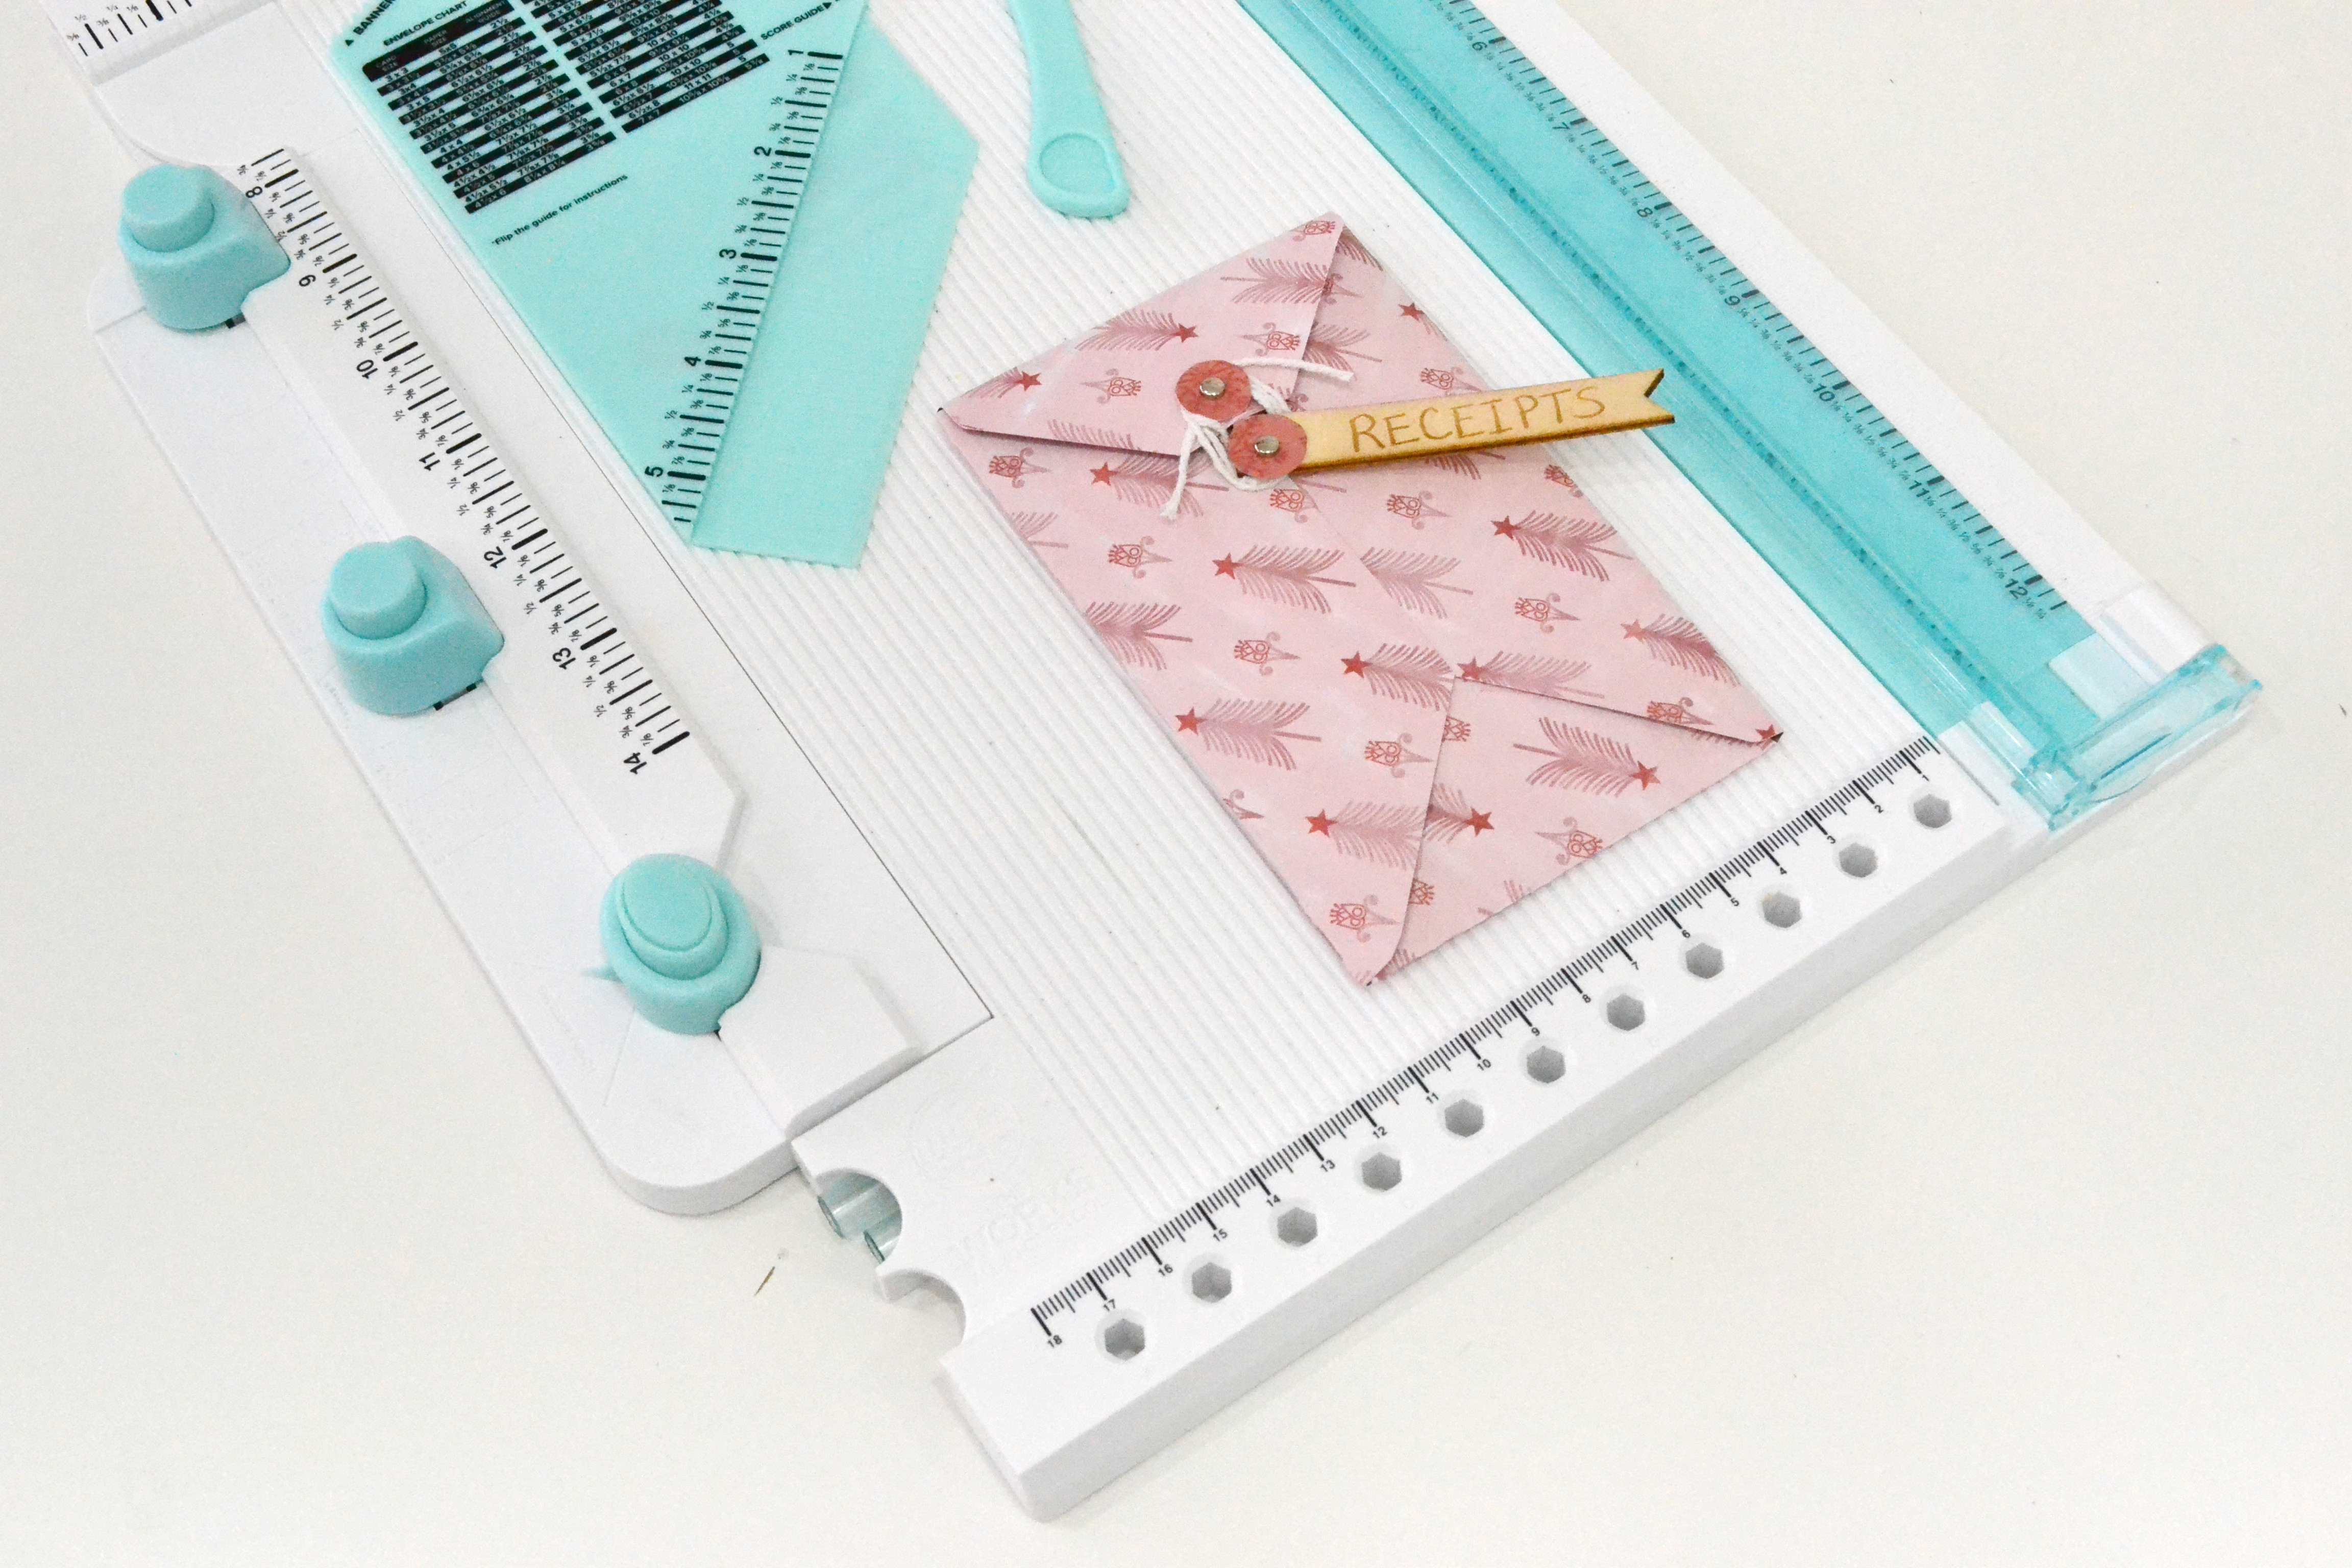 DIY December Planner with the Singe Quill by Aly Dosdall for We R Memory Keepers